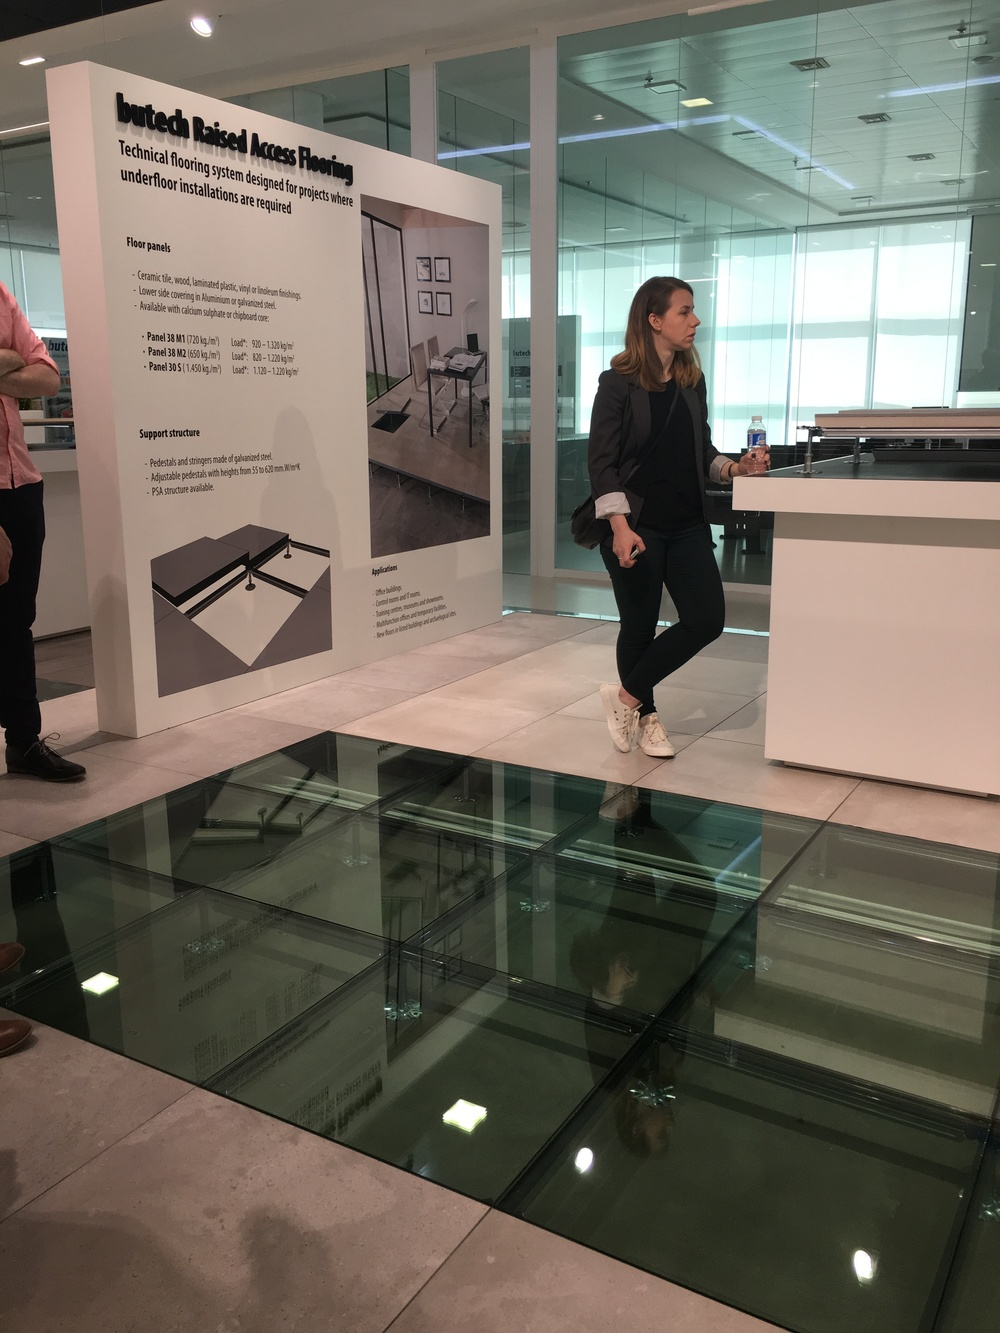 My new pal, architect Rachel Moore asks questions about raised access flooring